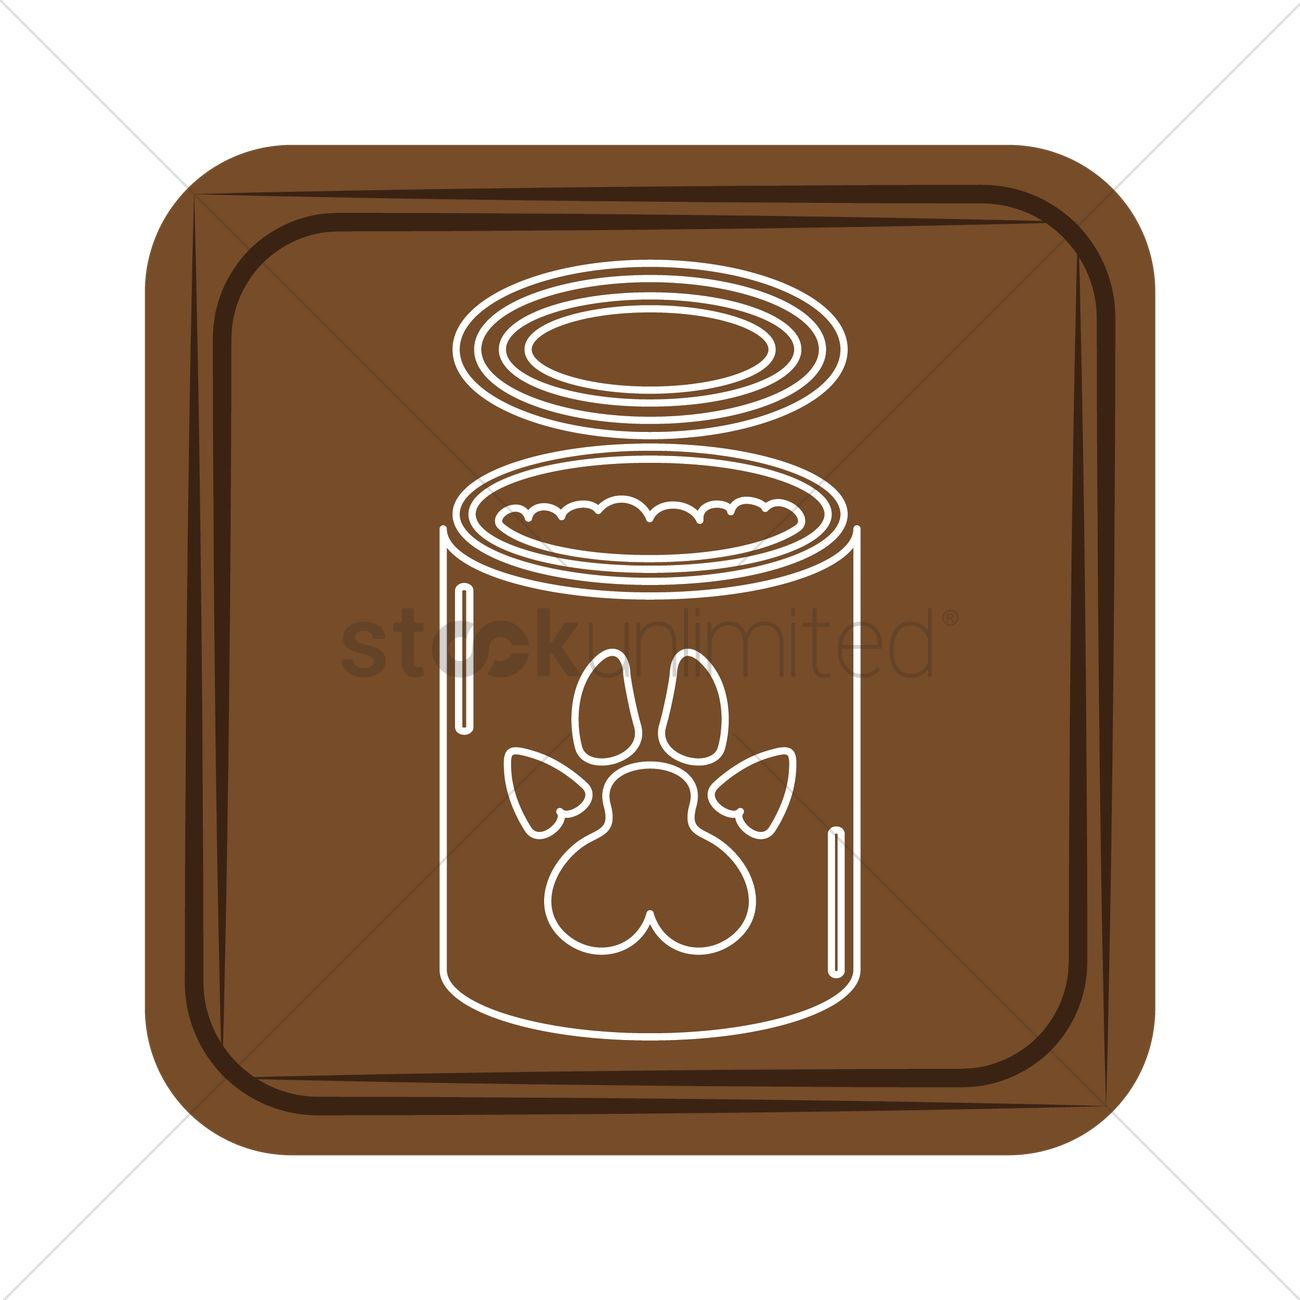 1300x1300 Dog Canned Food Vector Image